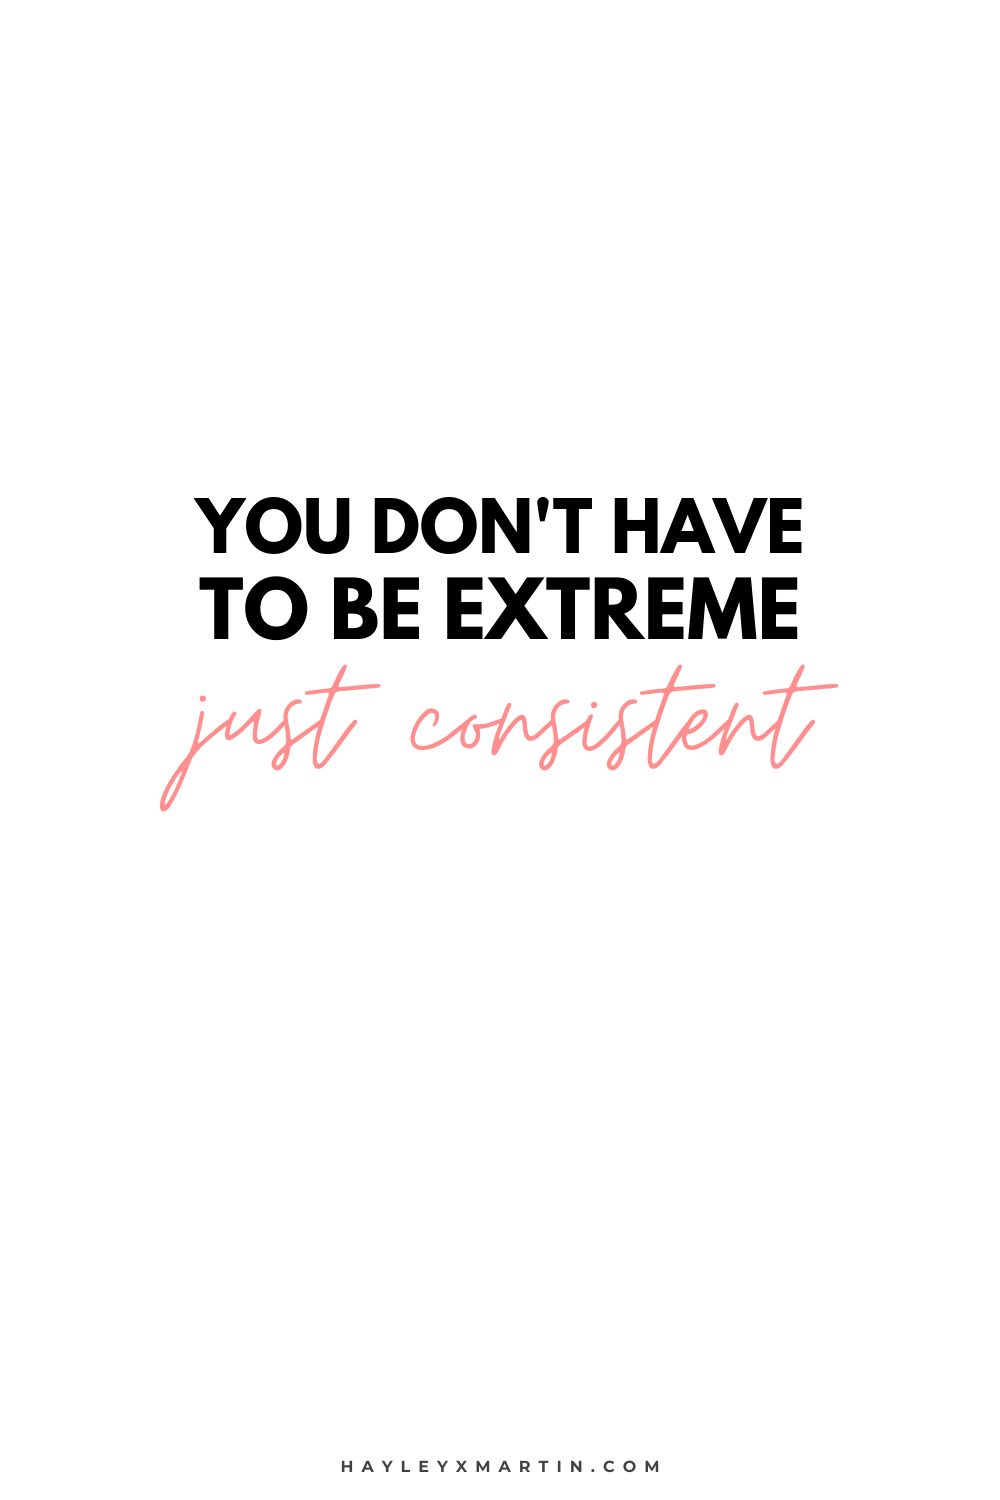 YOU DON'T HAVE TO BE EXTREME, JUST CONSISTENT | HAYLEYXMARTIN